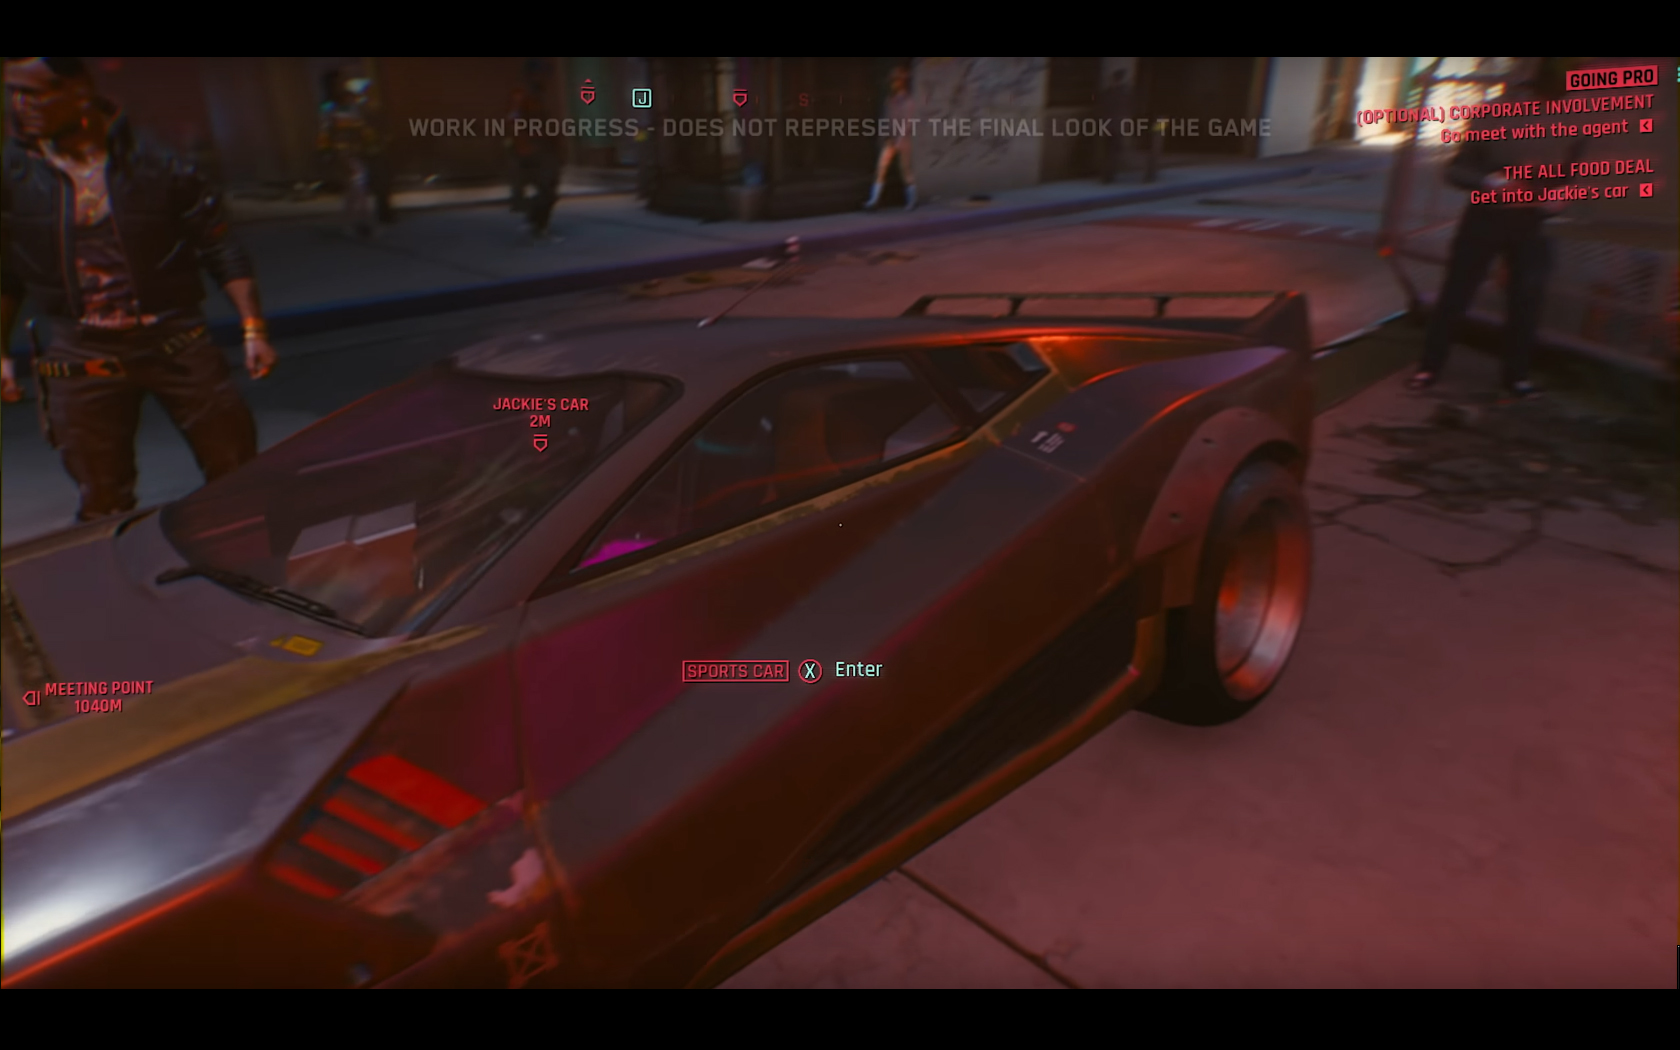 CD Projekt Red - Cyberpunk 2077 - video reveal gameplay - 2018 - screen - sports car QUADRA - side view